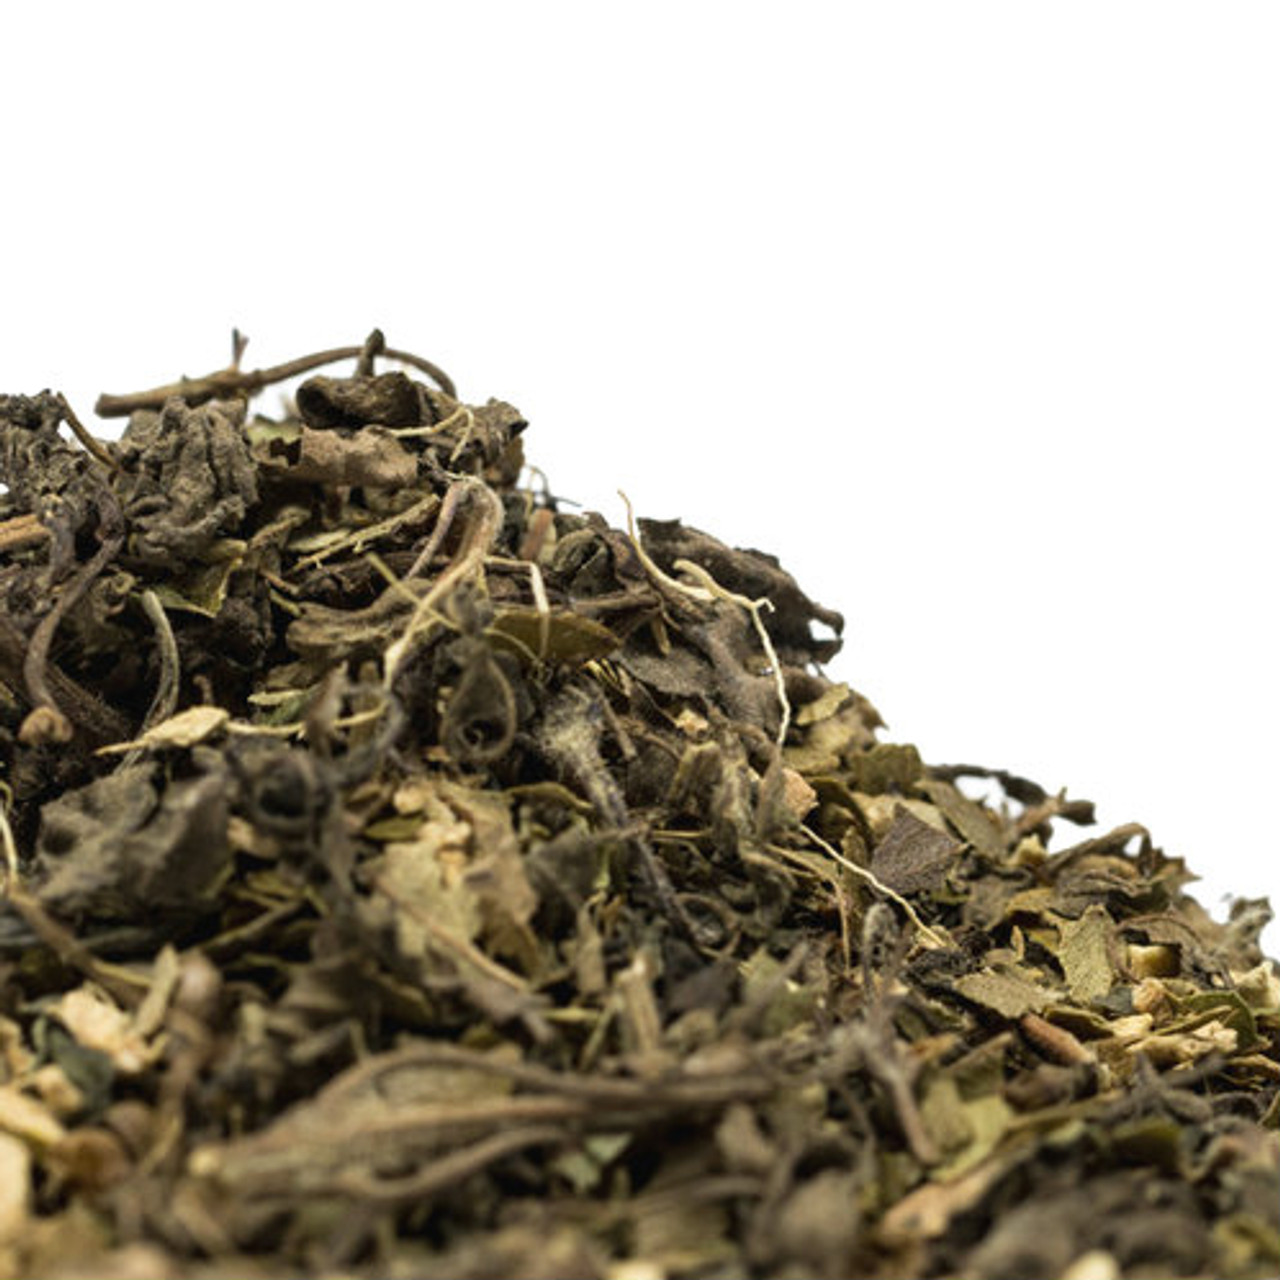 Lemon Ginger Tulsi is a caffeine free blend that fuses Krishna, Rama and Vana Tulsi along with ginger and lemon myrtle to create a delicious combination that provides a kick of ginger spice with a slight citrus tartness on the palate. Goes well hot and iced.